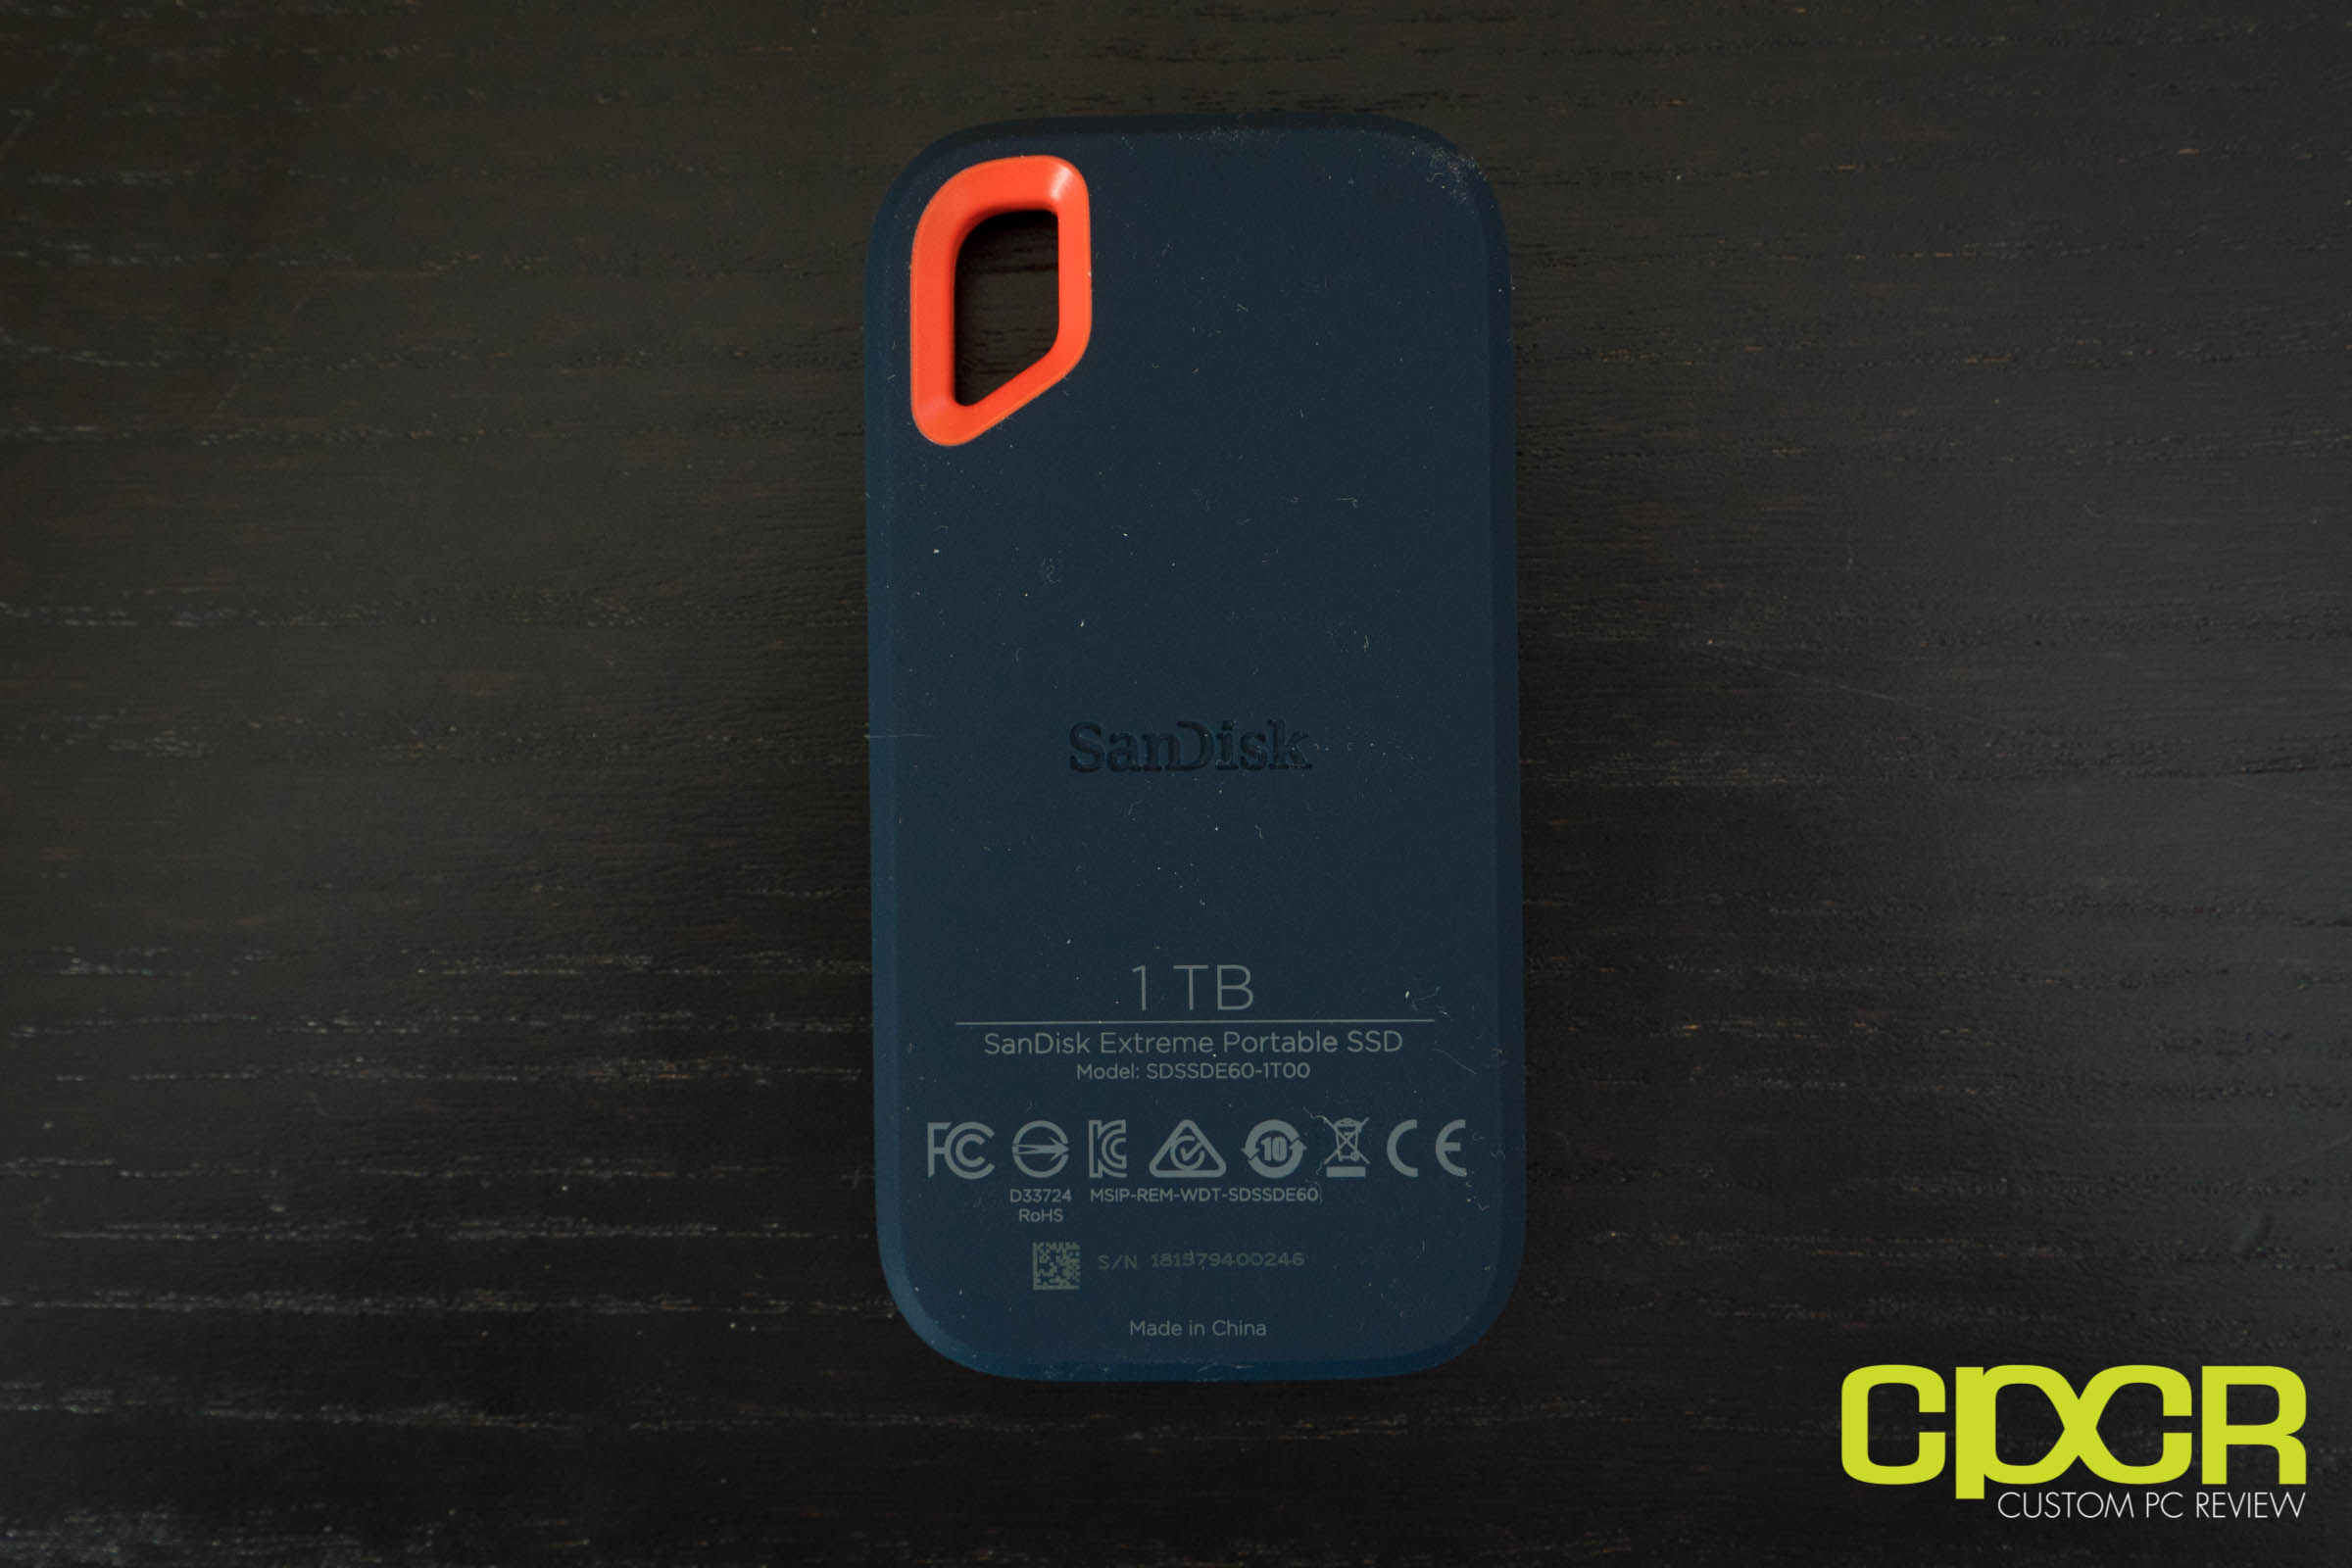 SanDisk Extreme Portable SSD Review | External SSD | Custom